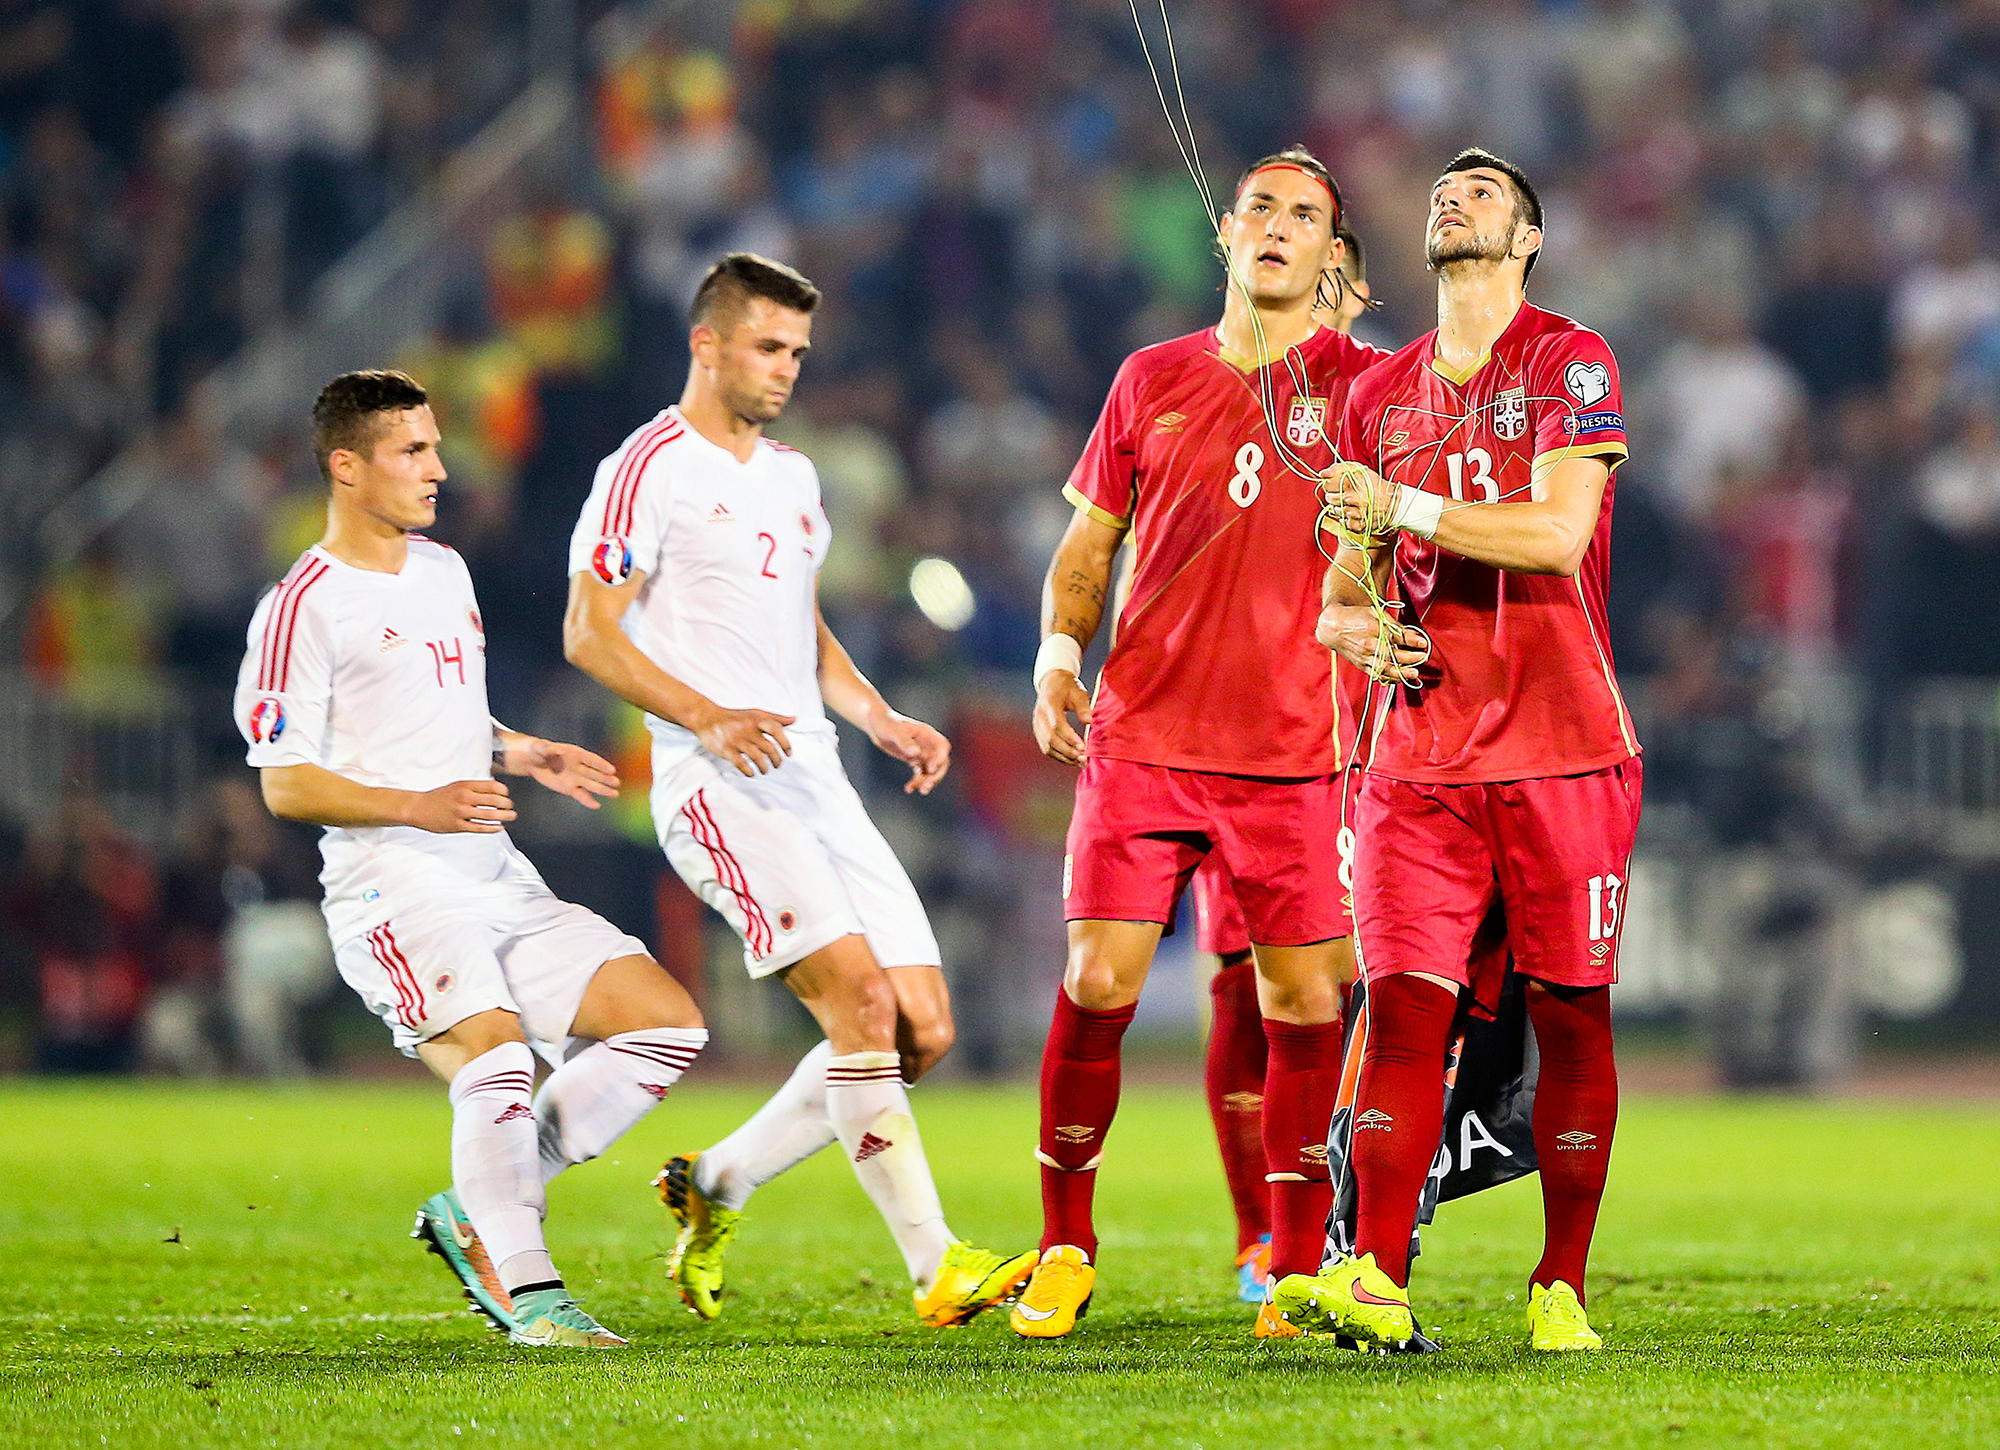 epa04447012 Serbian players try to recover a flag on the pitch before the Euro 2016 Group I qualifying match between Serbia and Albania was suspended, at the Partizan stadium in Belgrade, Serbia, 14 October 2014. The match was suspended after the flag Albanian symbols was flown above the stadium remote controlled by a drone which provoked a fight between players. EPA/SRDJAN SUKI